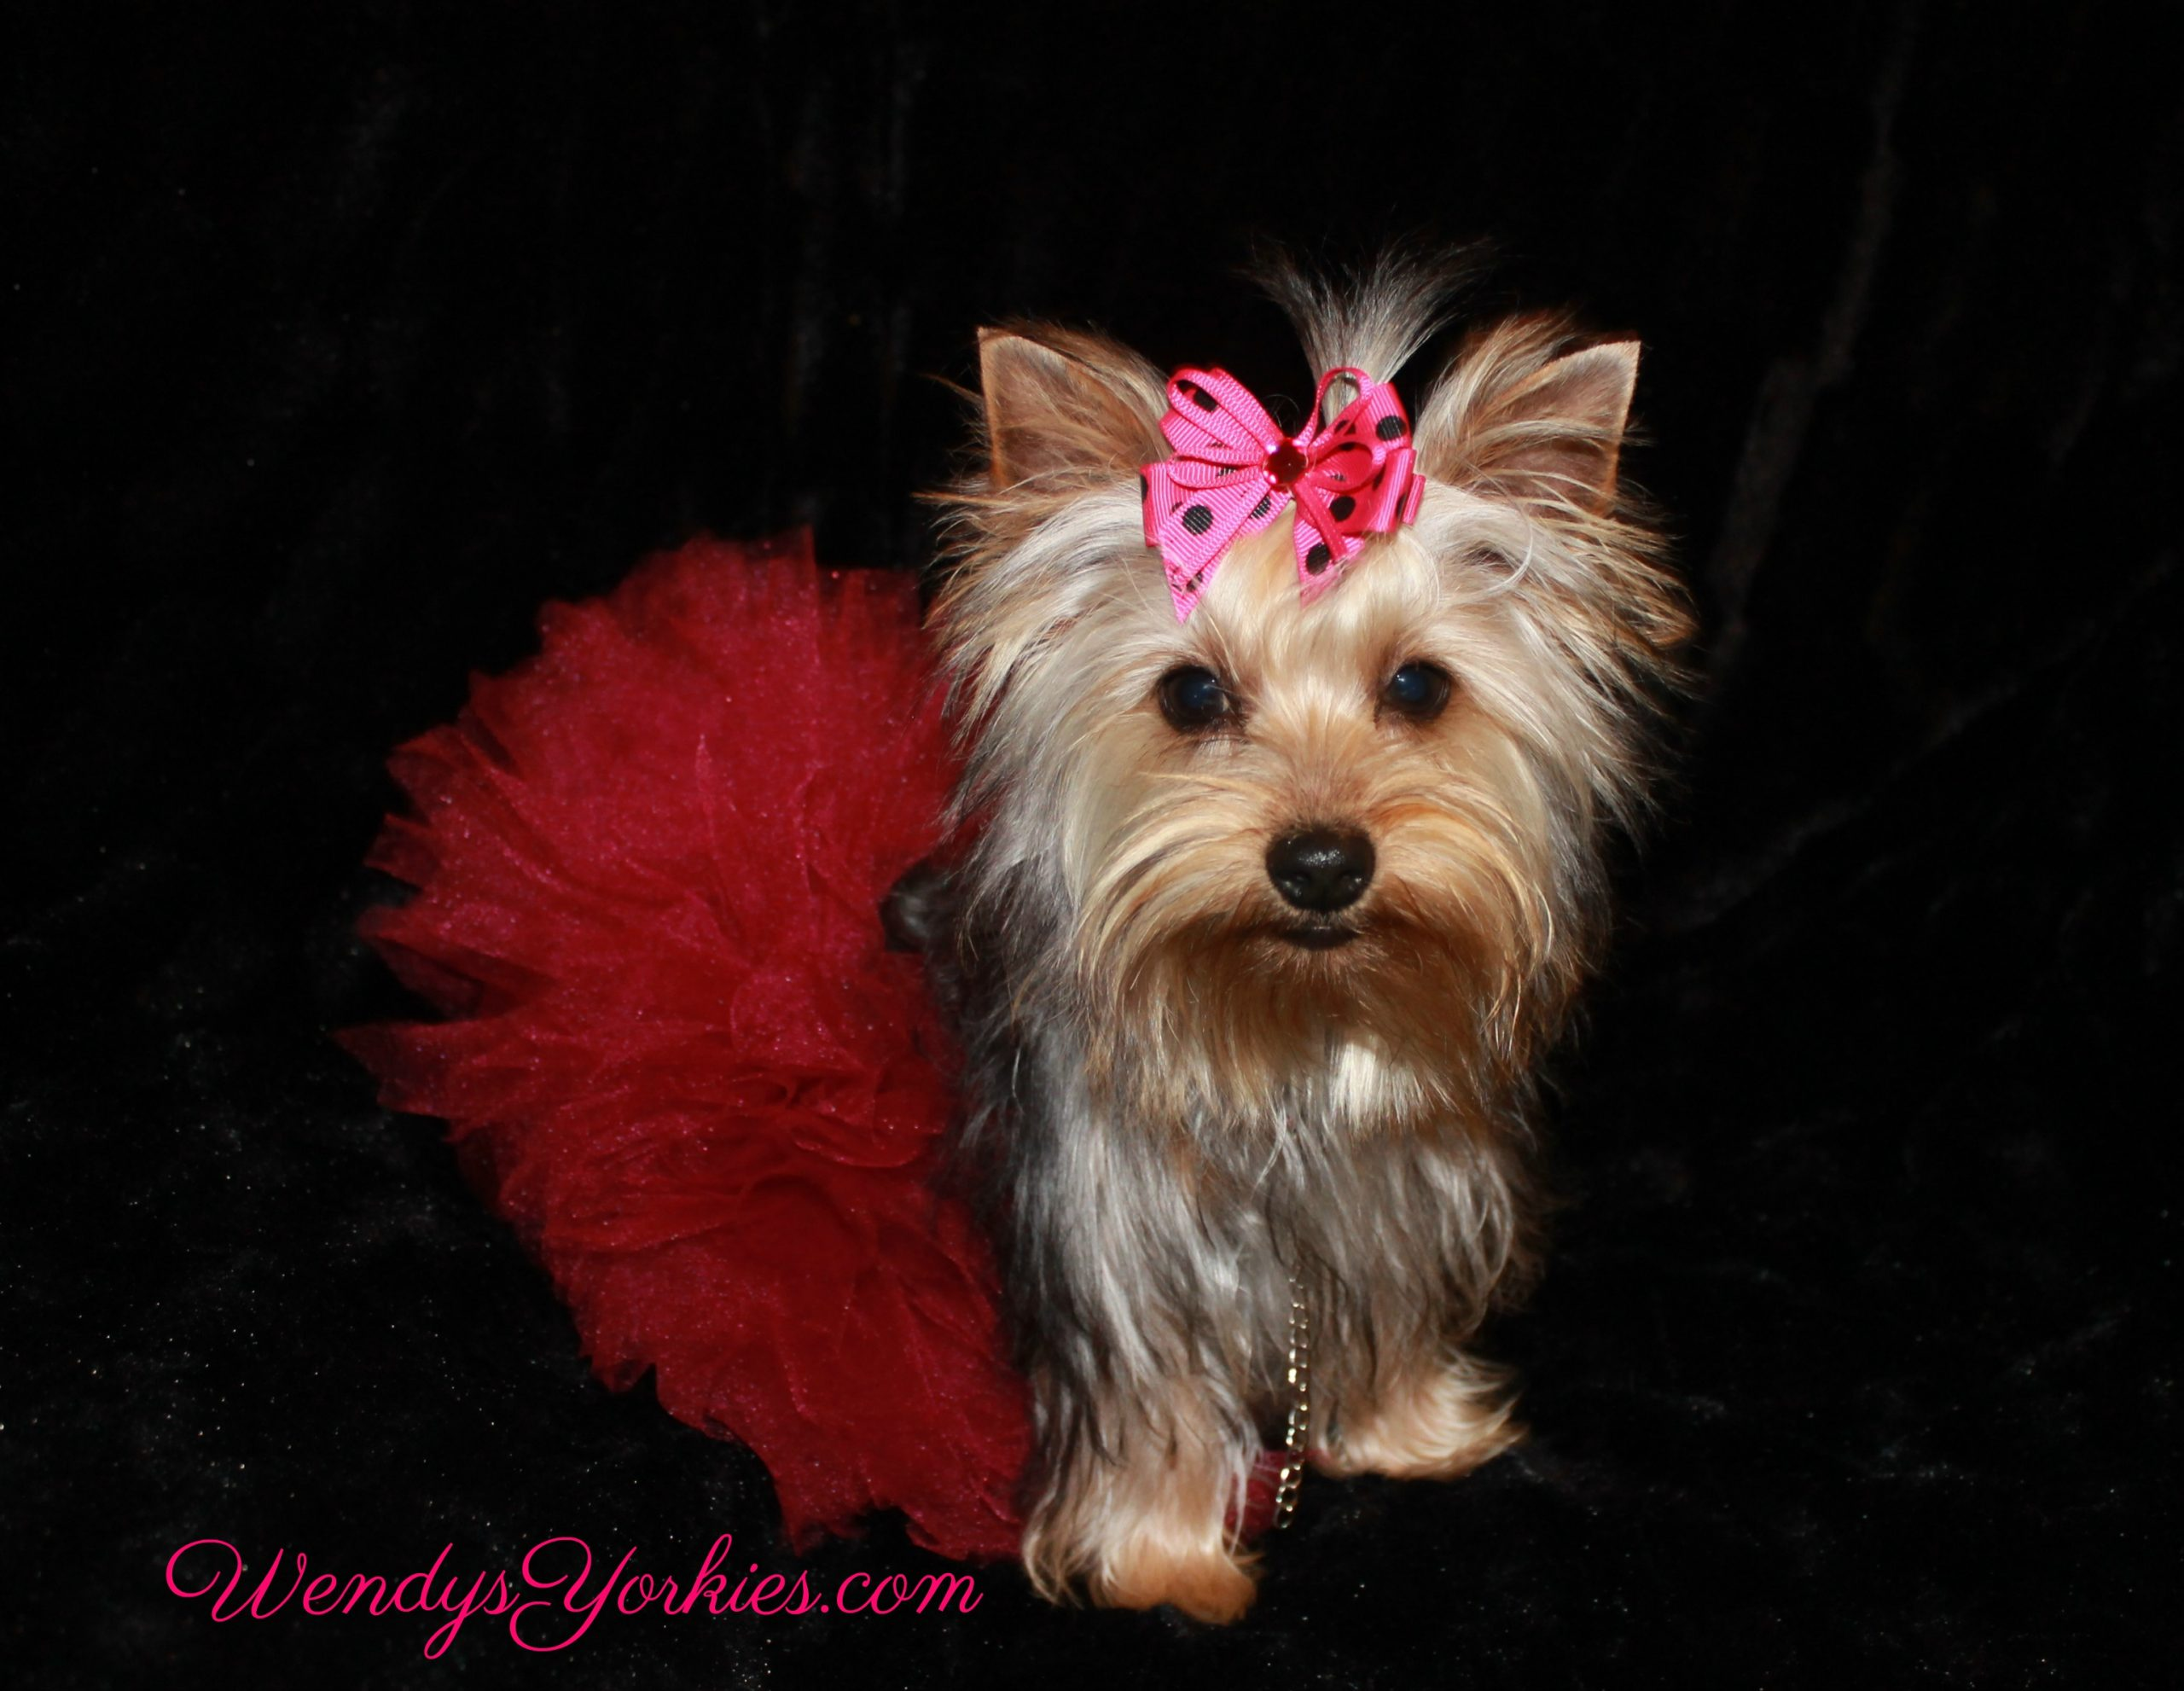 Yorkie puppy breeder in Texas, Brittney, WendysYorkies.com